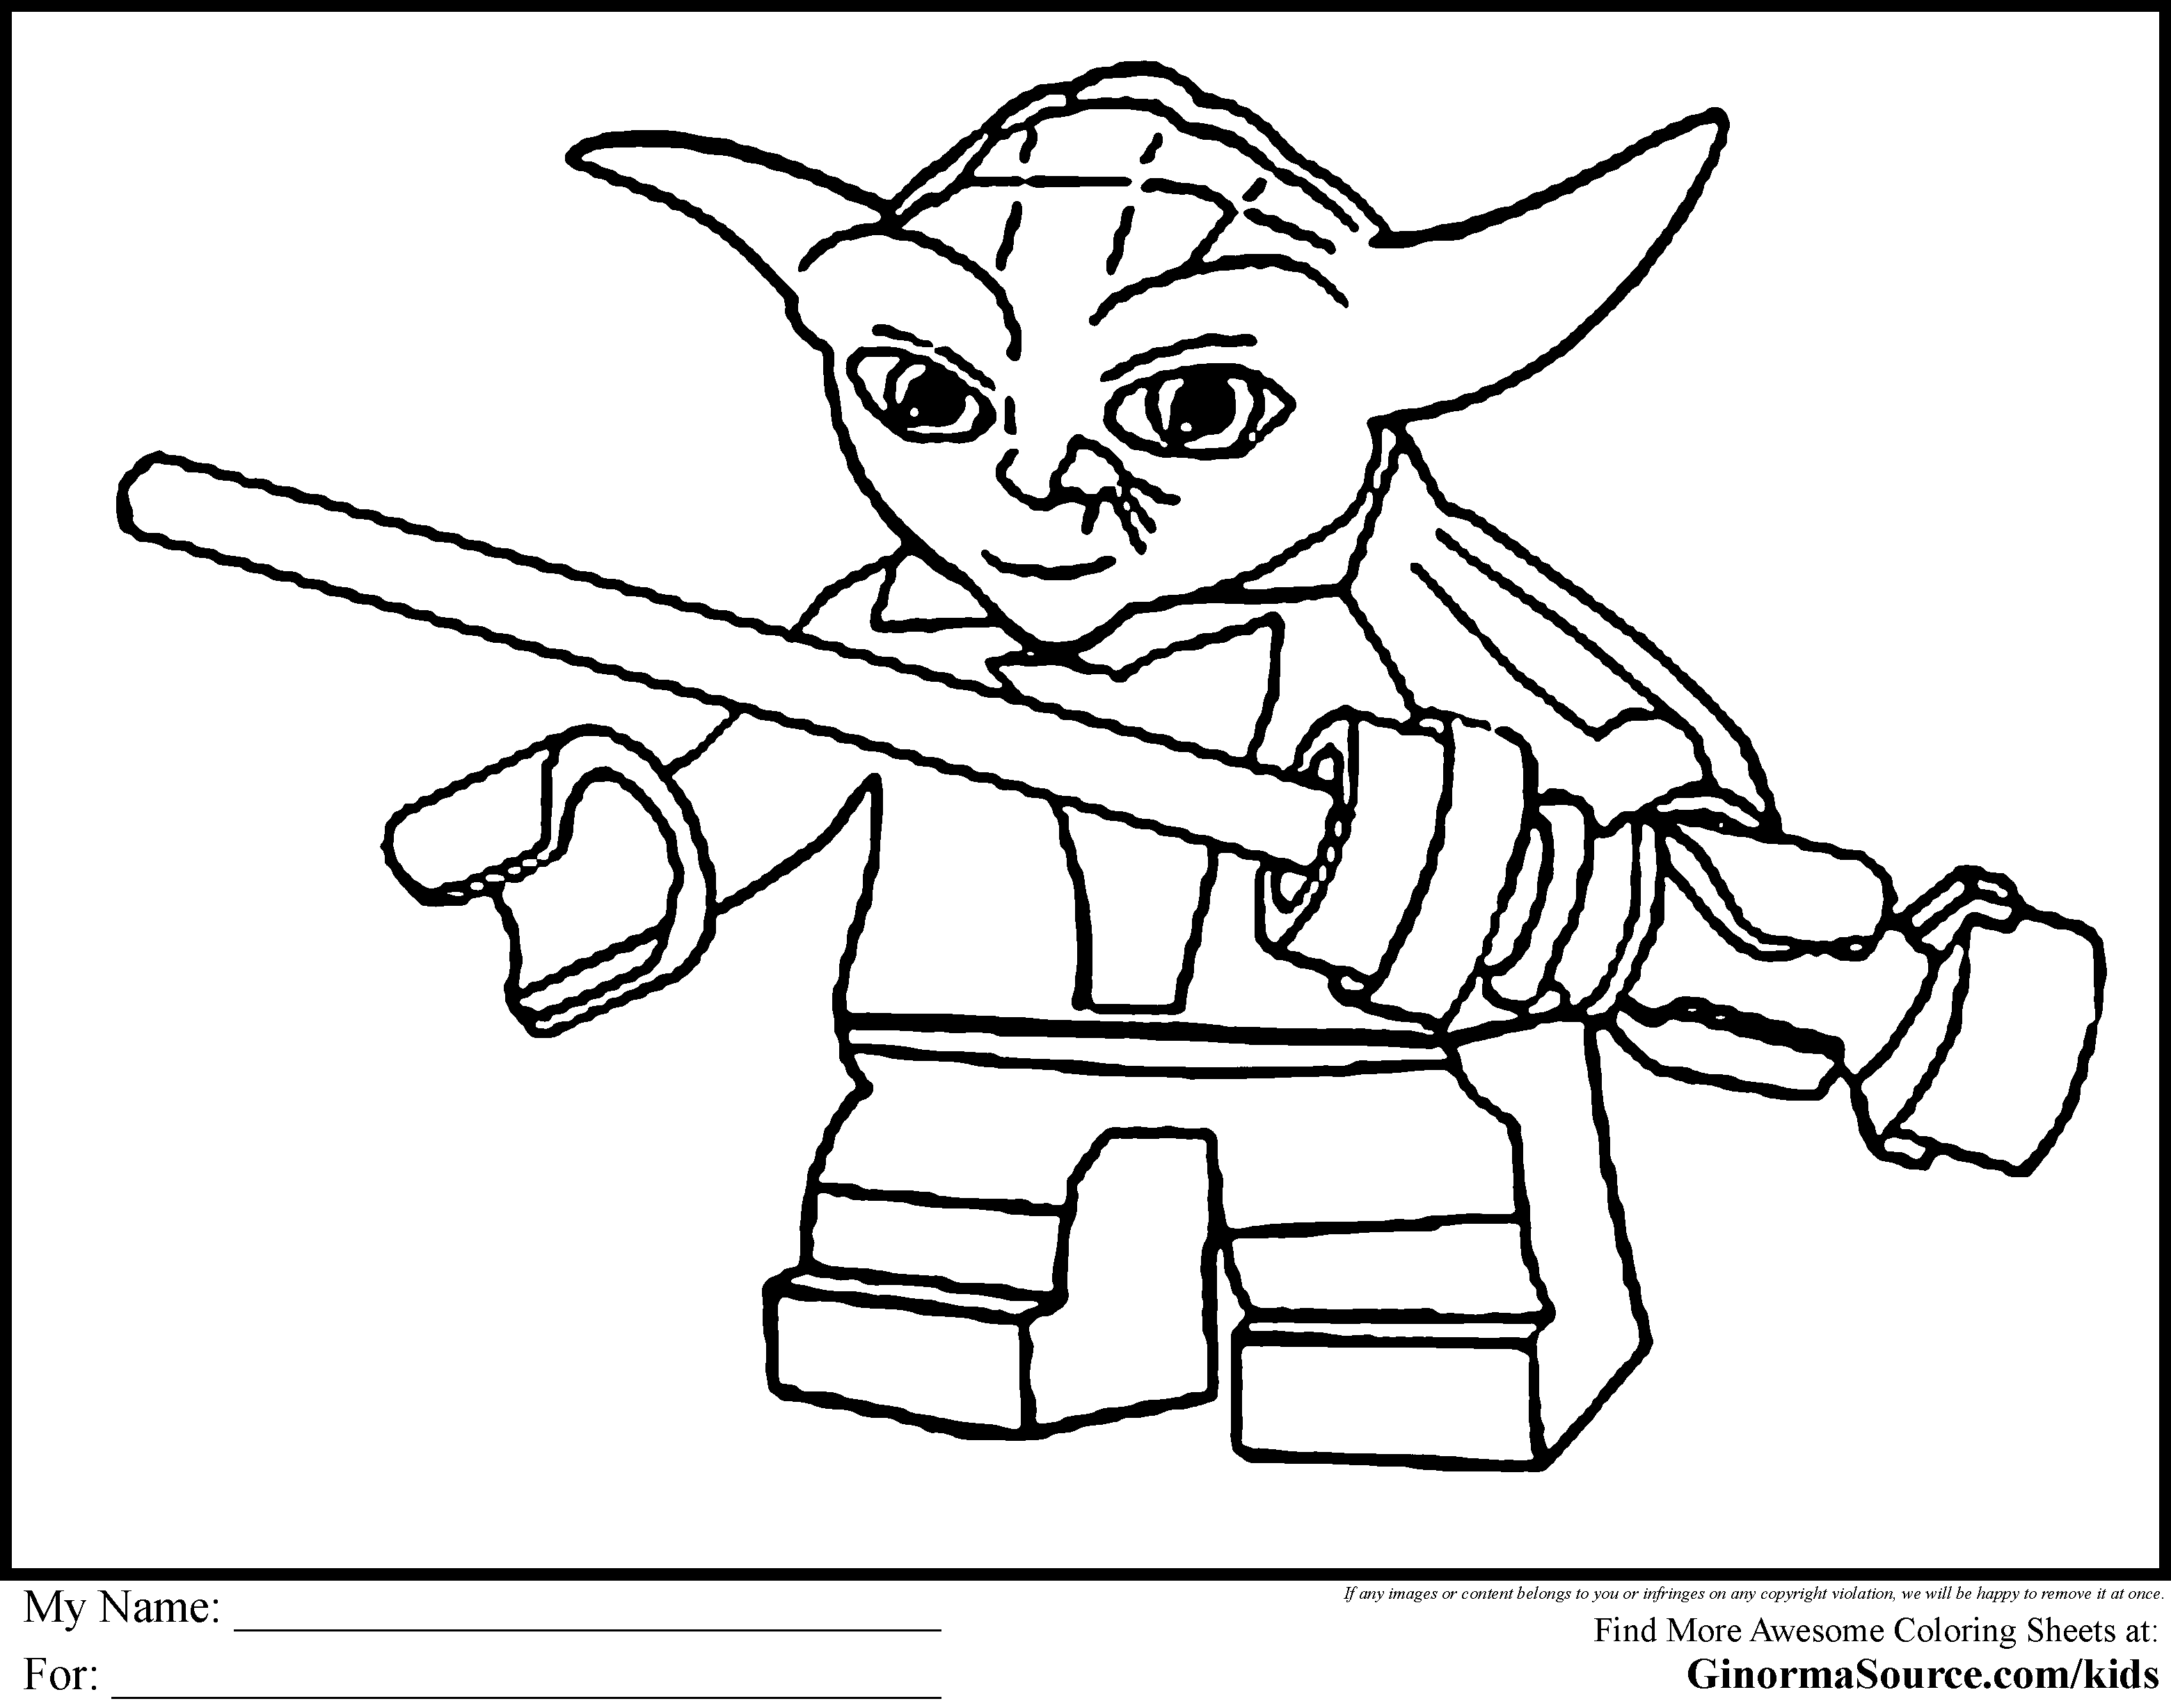 colouring pages lego star wars lego star wars coloring pages to download and print for free wars colouring star pages lego